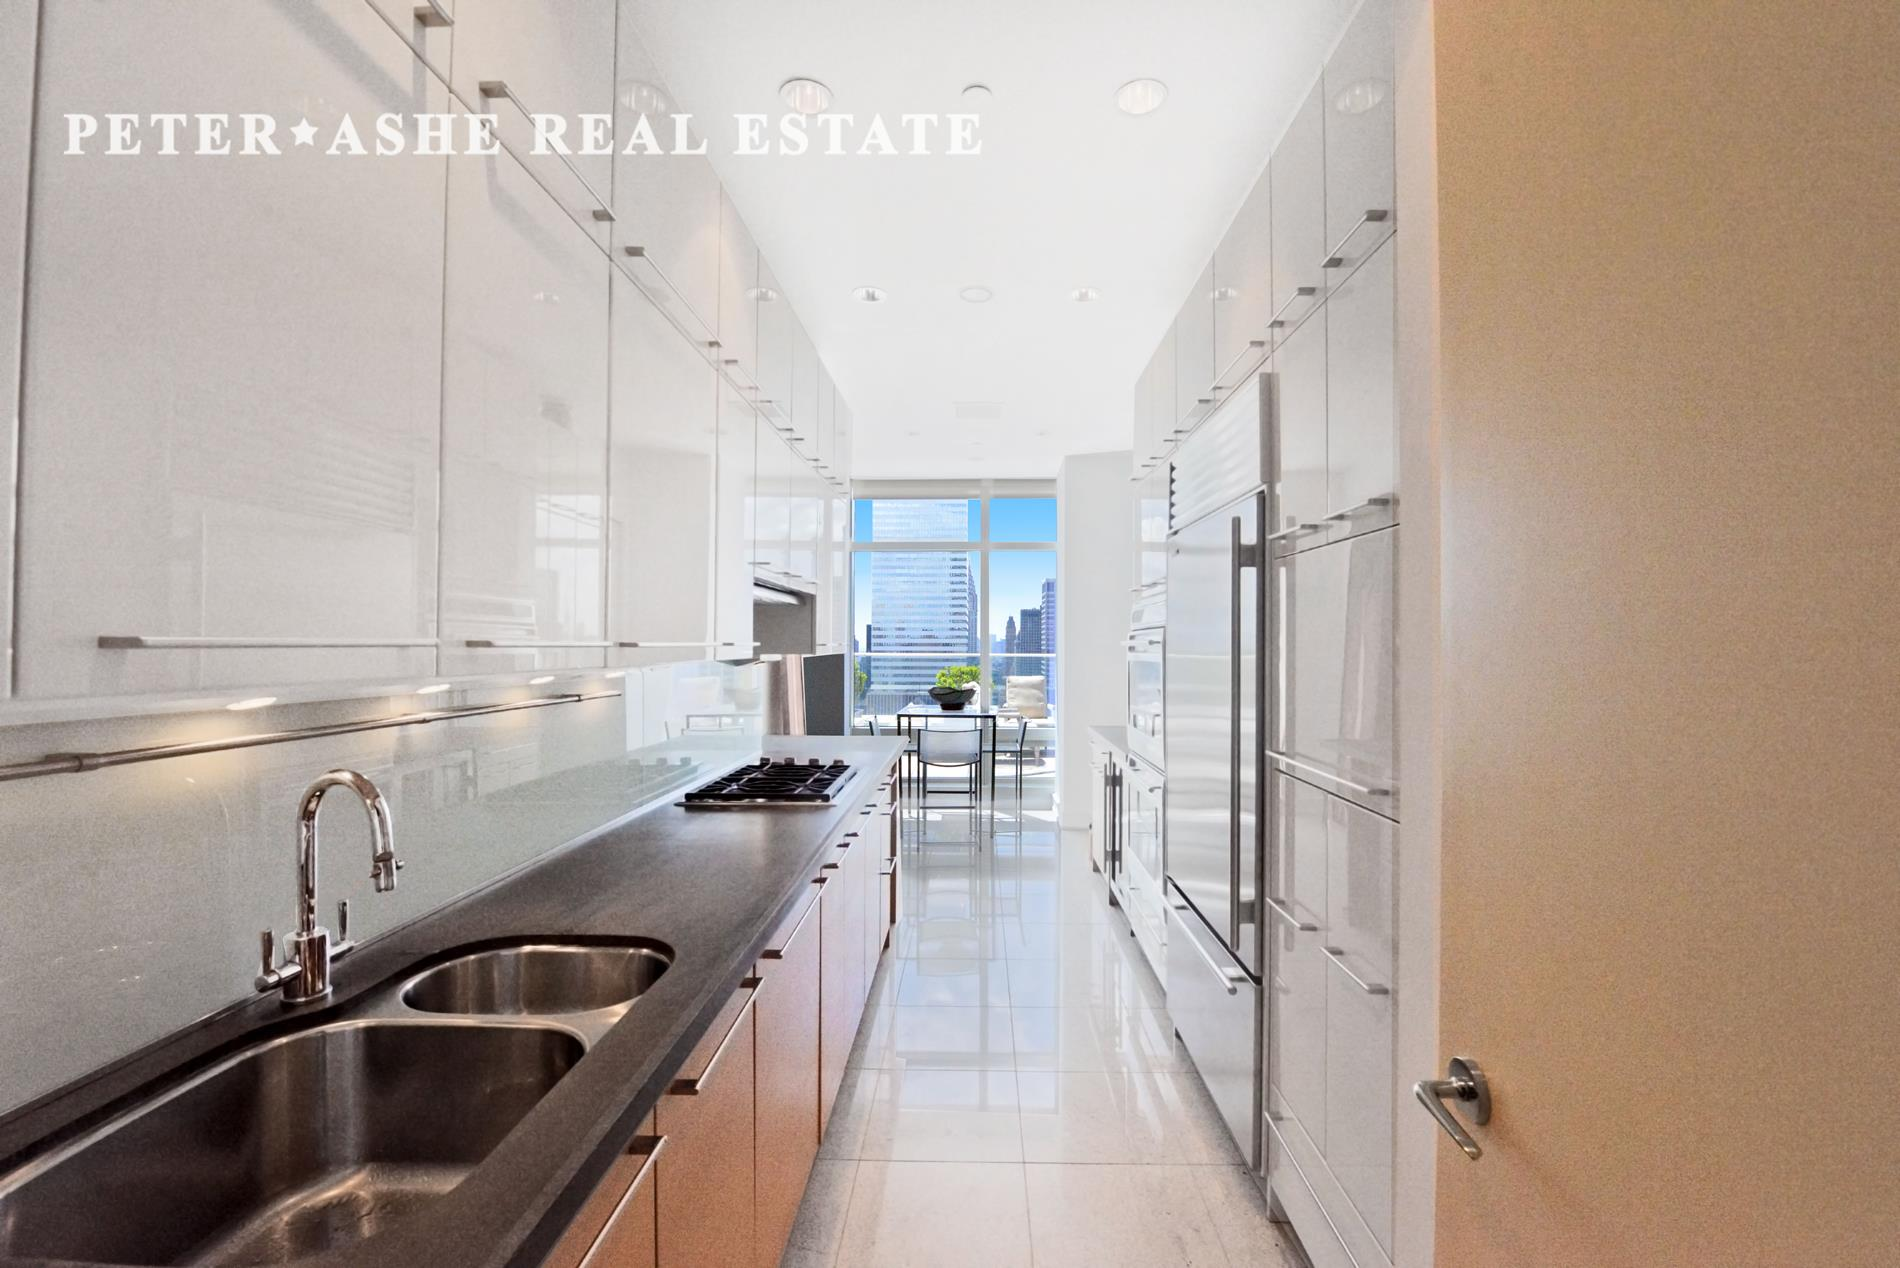 One Beacon Court   Midtown East New York Condominium for Sale 3 bedrooms 3  full bathrooms and 1 partial bathrooms   Christie's International Real